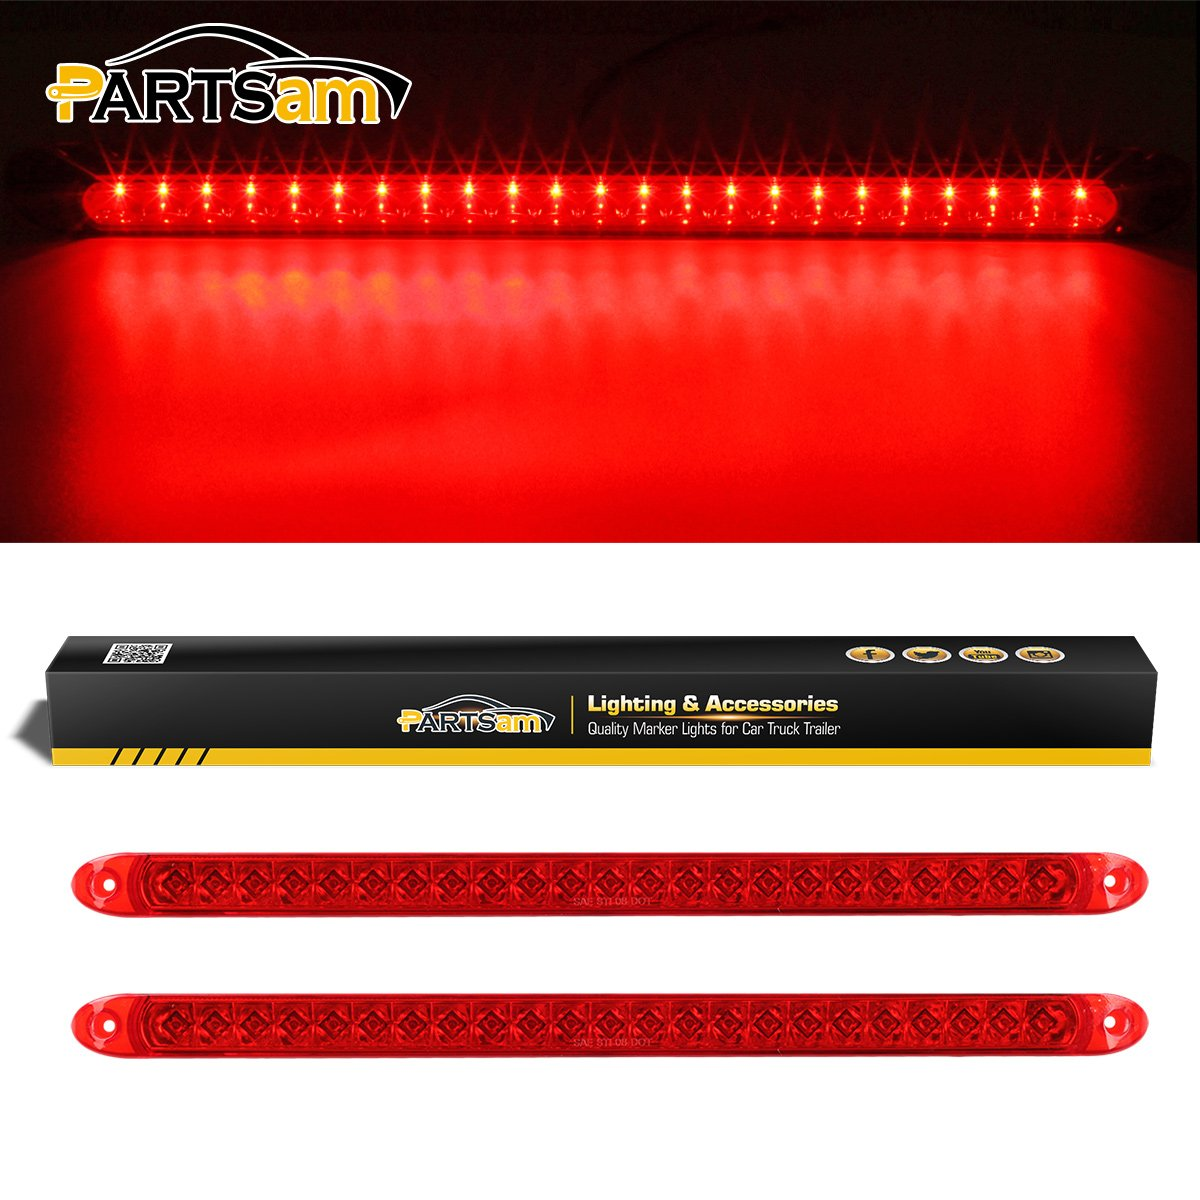 Partsam 2PC Red 17'' 23 LED Light Bar Stop Turn Tail Third 3rd Brake Light Car Truck Trailer RV Bus Boat Identification ID Bar Waterproof by Partsam